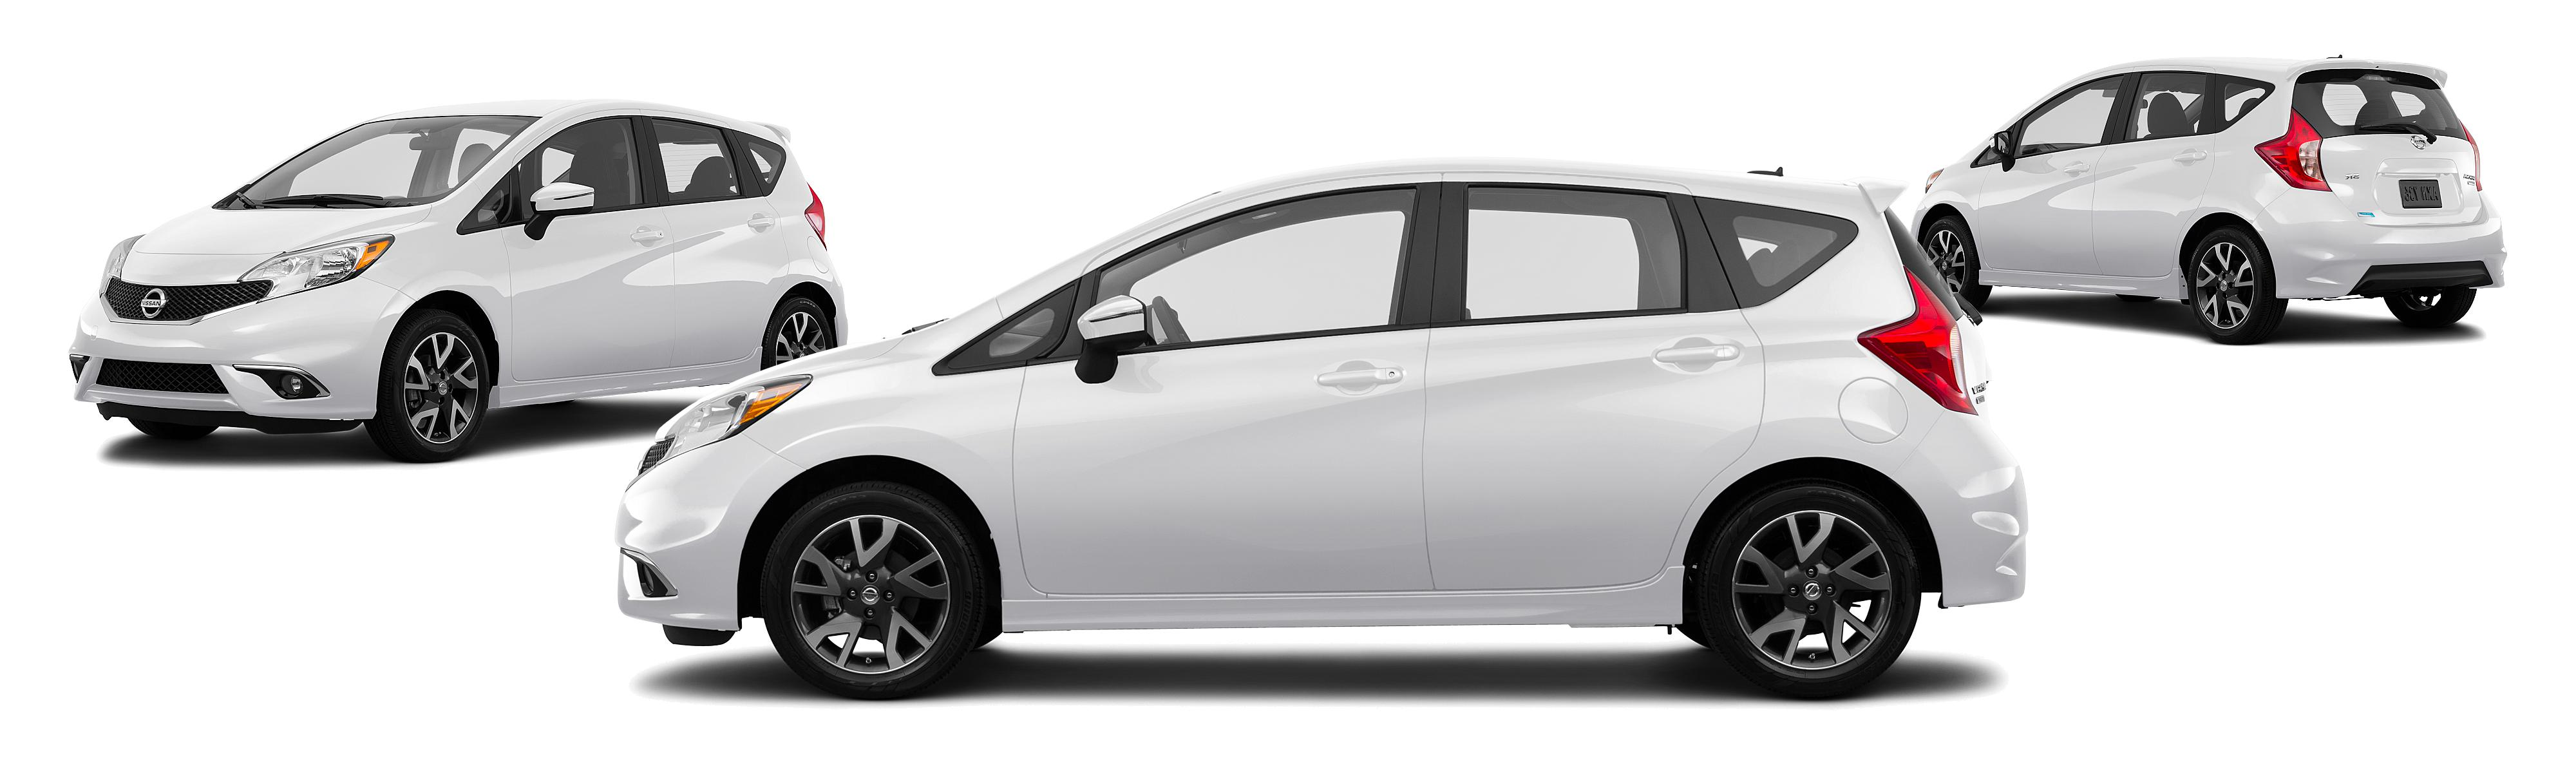 versa com database information specs nissan and auto pictures